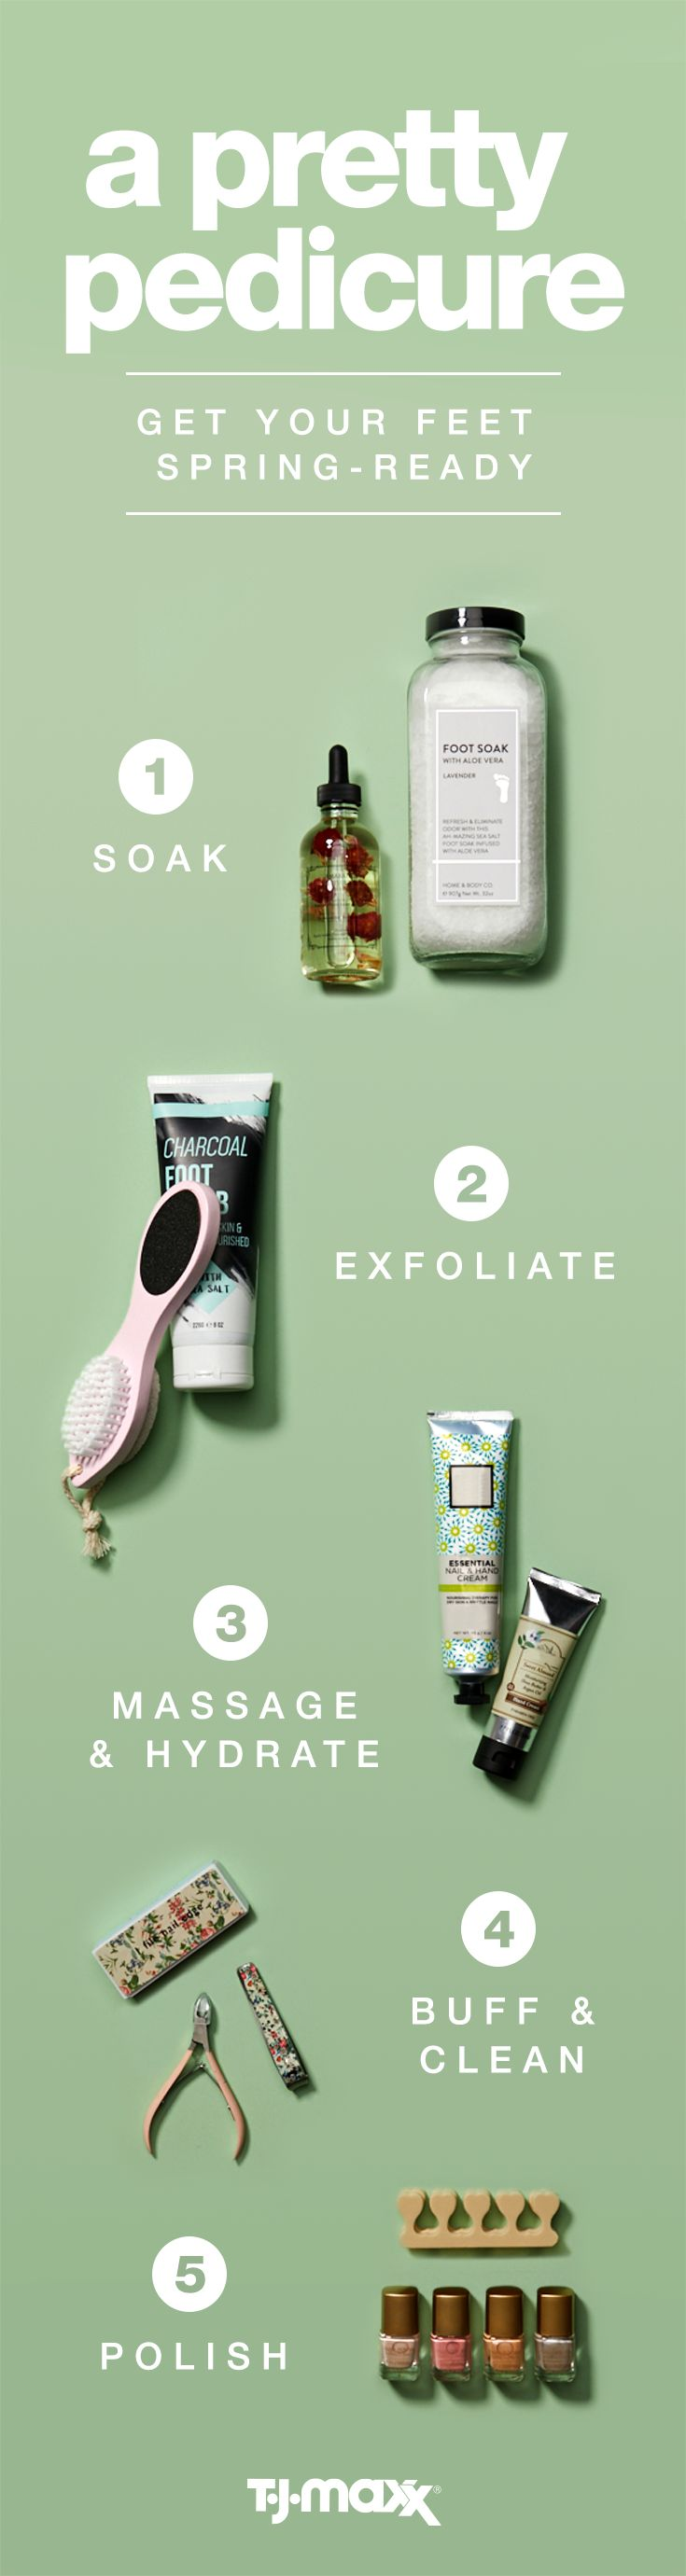 "Treat yourself to a DIY spring pedicure with all of the essentials. Relax with rejuvenating moisturizers or scrubs and top off your ""me time"" with spring-ready polish in a fun hue. It's the ultimate pre-spring spa day, without having to leave your living room. Shop your local T.J.Maxx or tjmaxx.com for more spa must-haves."